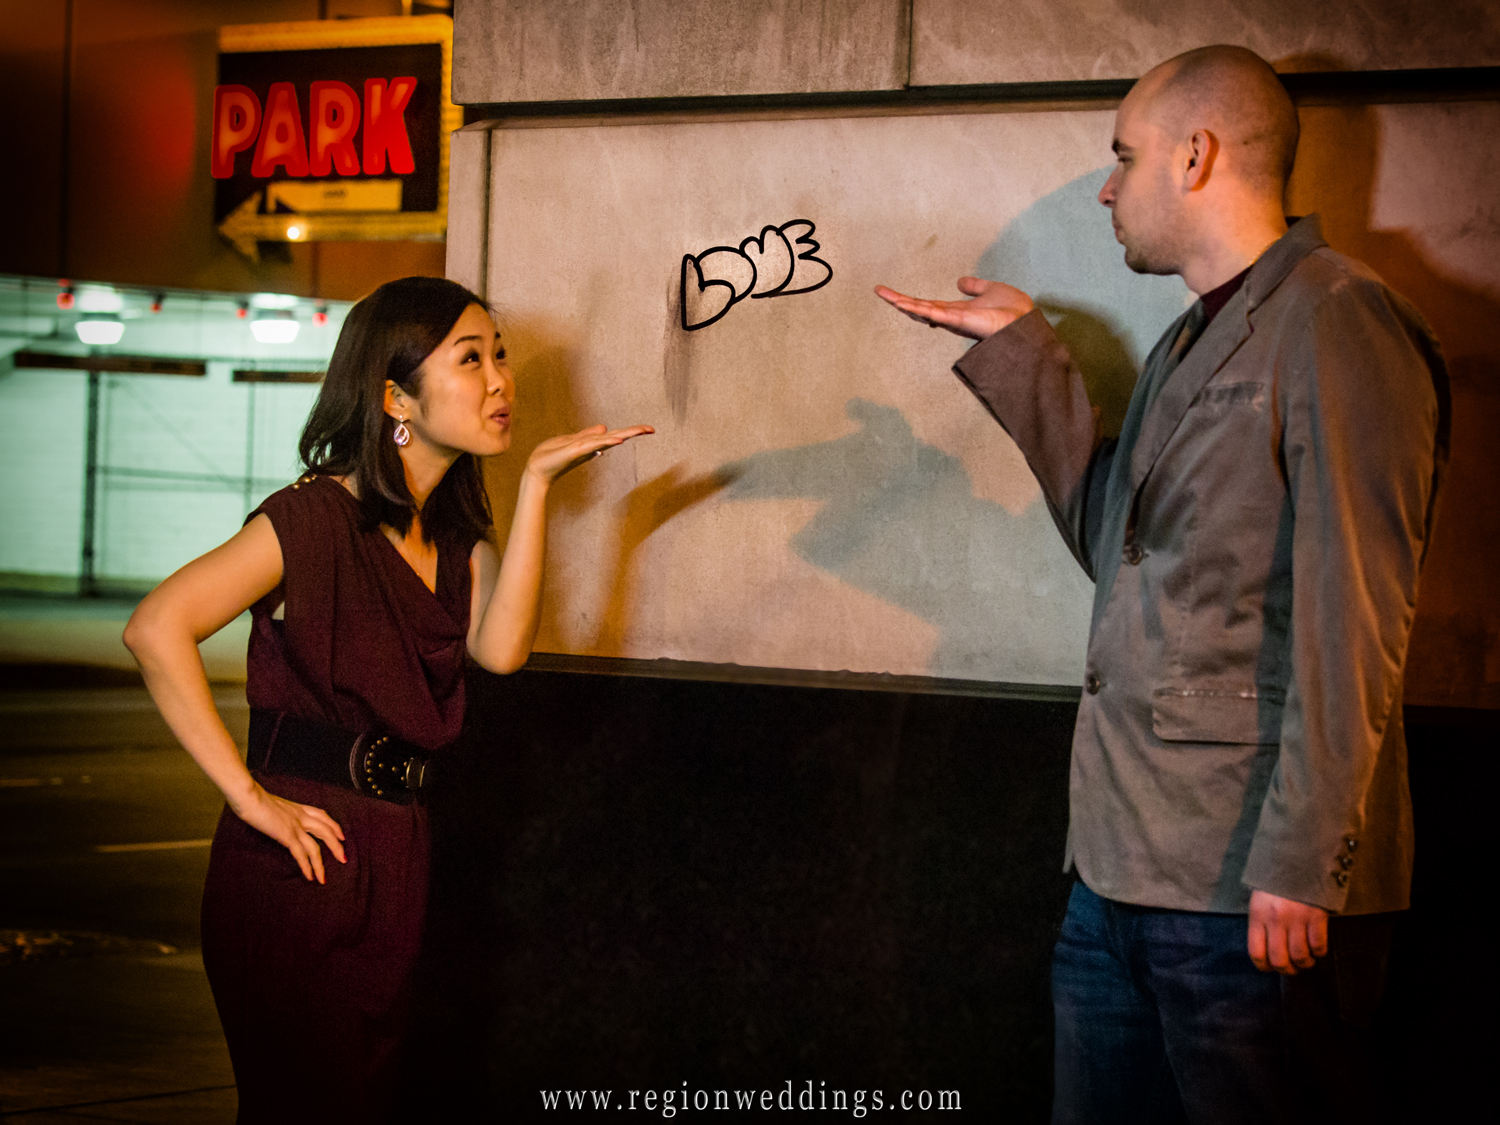 A romantic couple blows kisses to each other in downtown Chicago during their night time engagement photo session.